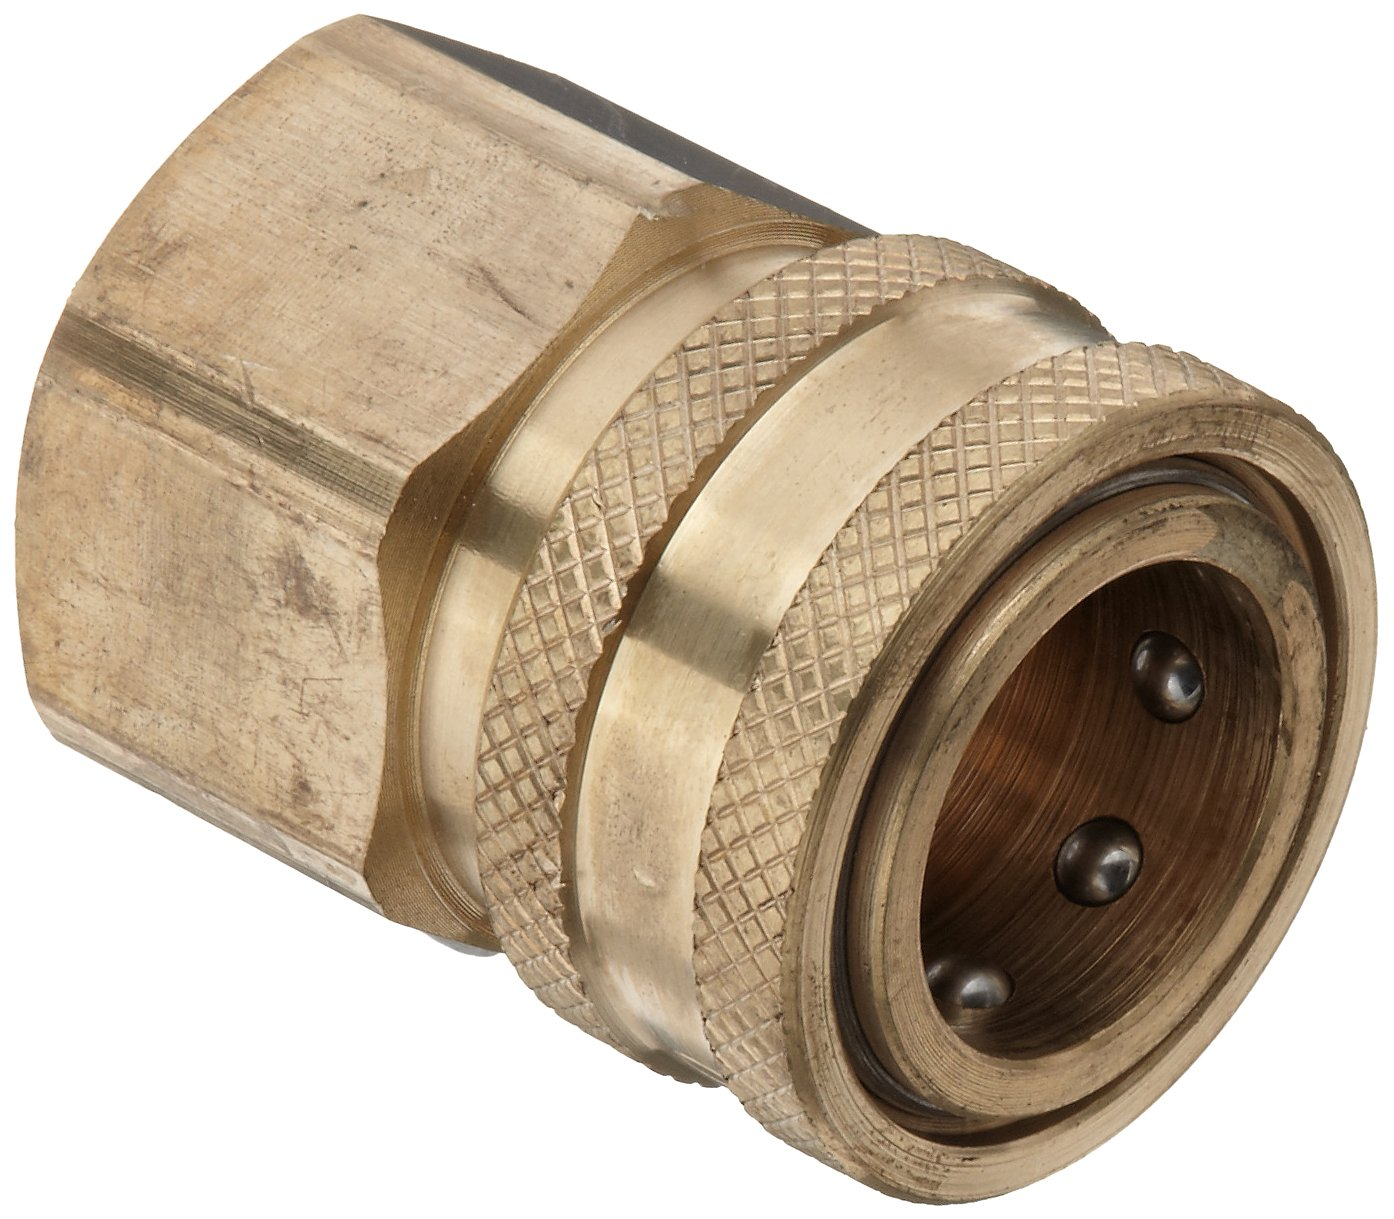 Dixon STFC6 Brass Hydraulic Quick-Connect Fitting, 3/4'' Female Coupling x 3/4''-14 NPTF Female